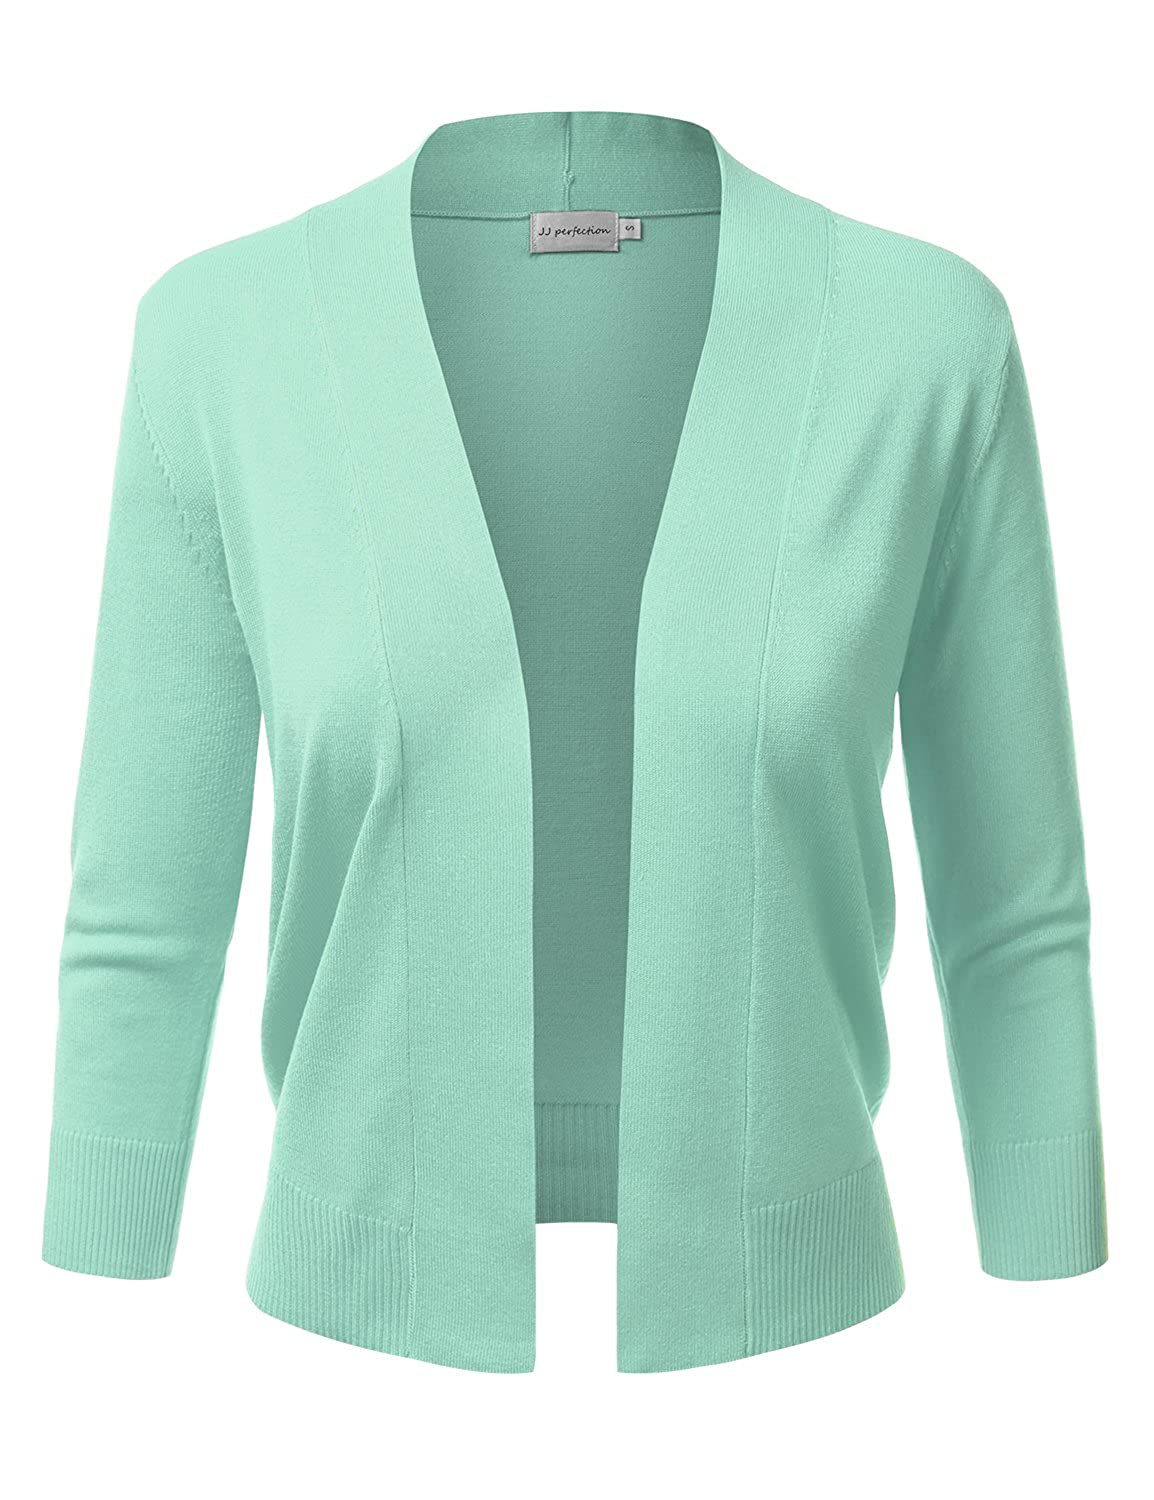 df72ce32b1 JJ Perfection Women s Basic 3 4 Sleeve Open Front Cropped Cardigan